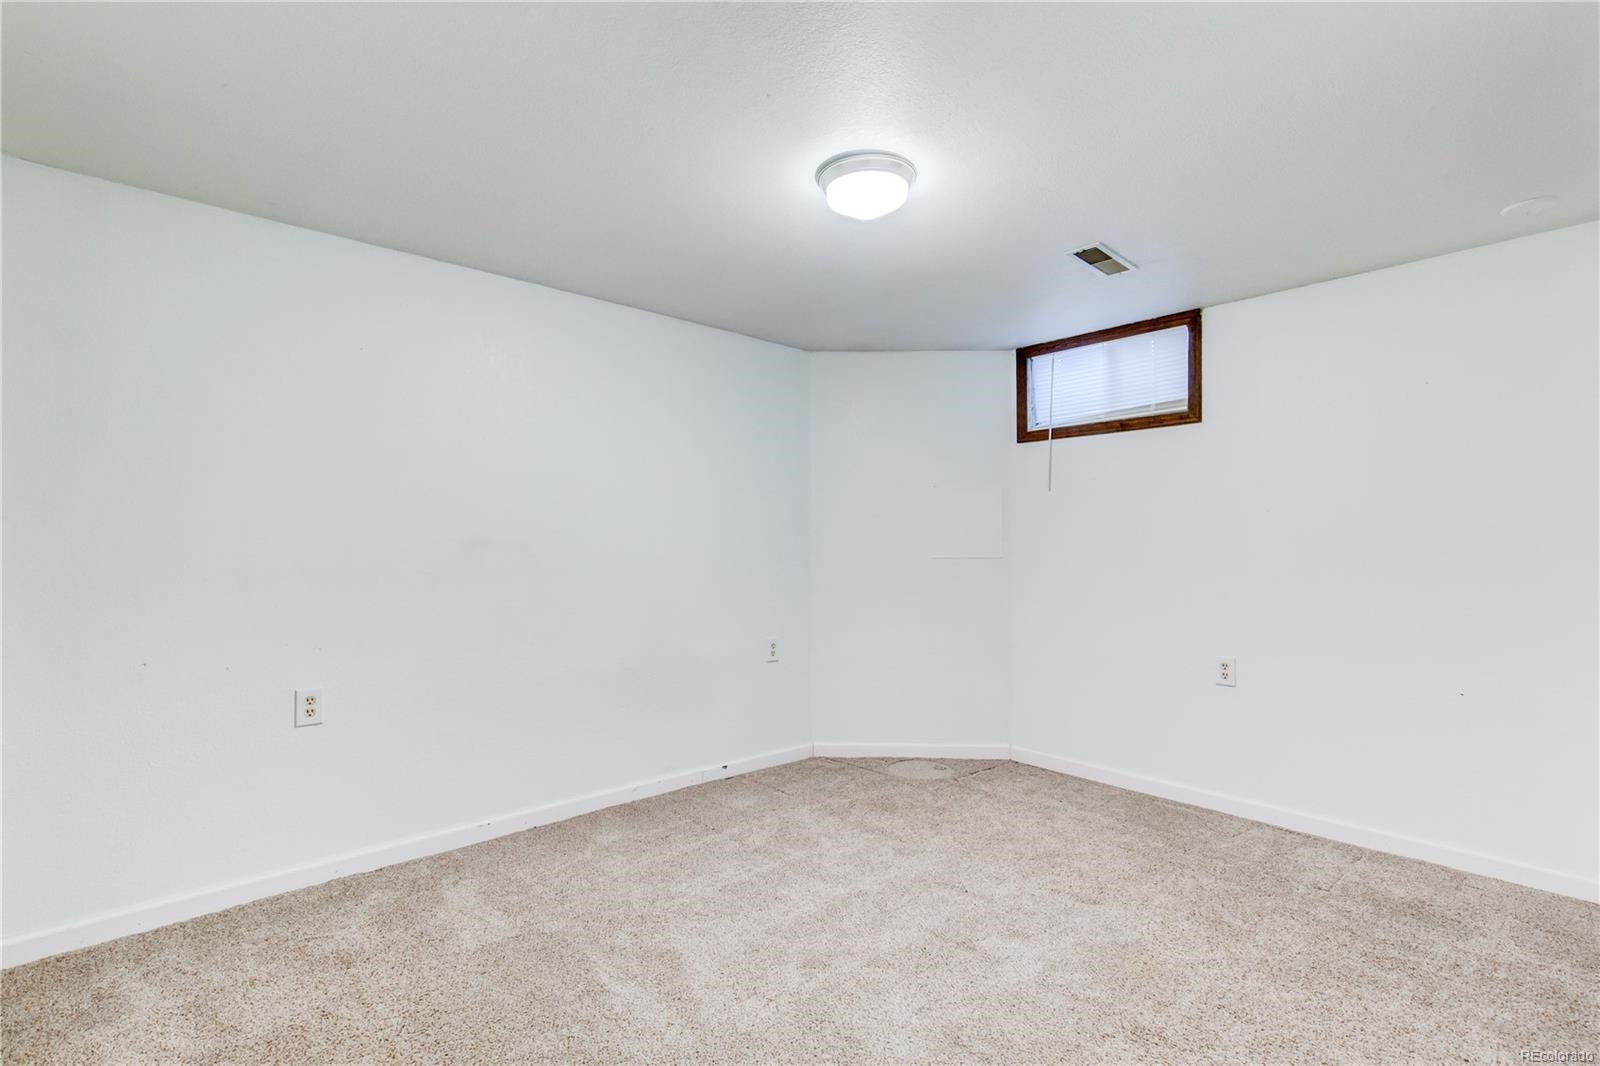 MLS# 5137325 - 21 - 6156 W 75th Place, Arvada, CO 80003